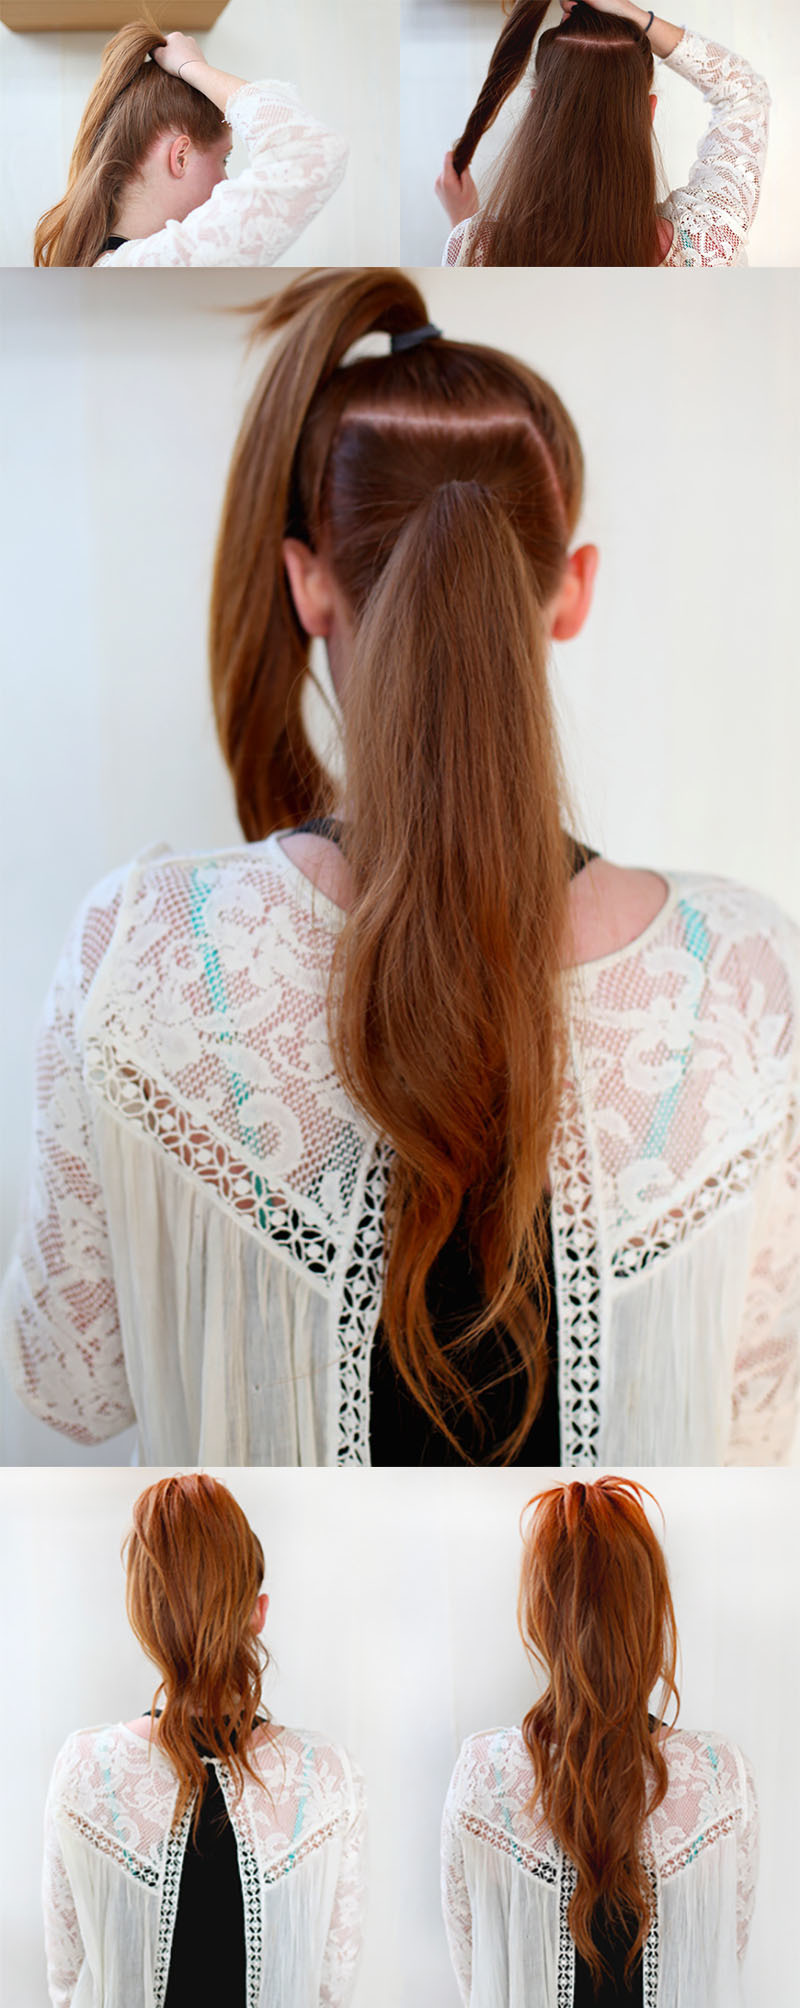 20 Easy Hairstyles For Women Whove Got No Time 7 Is A